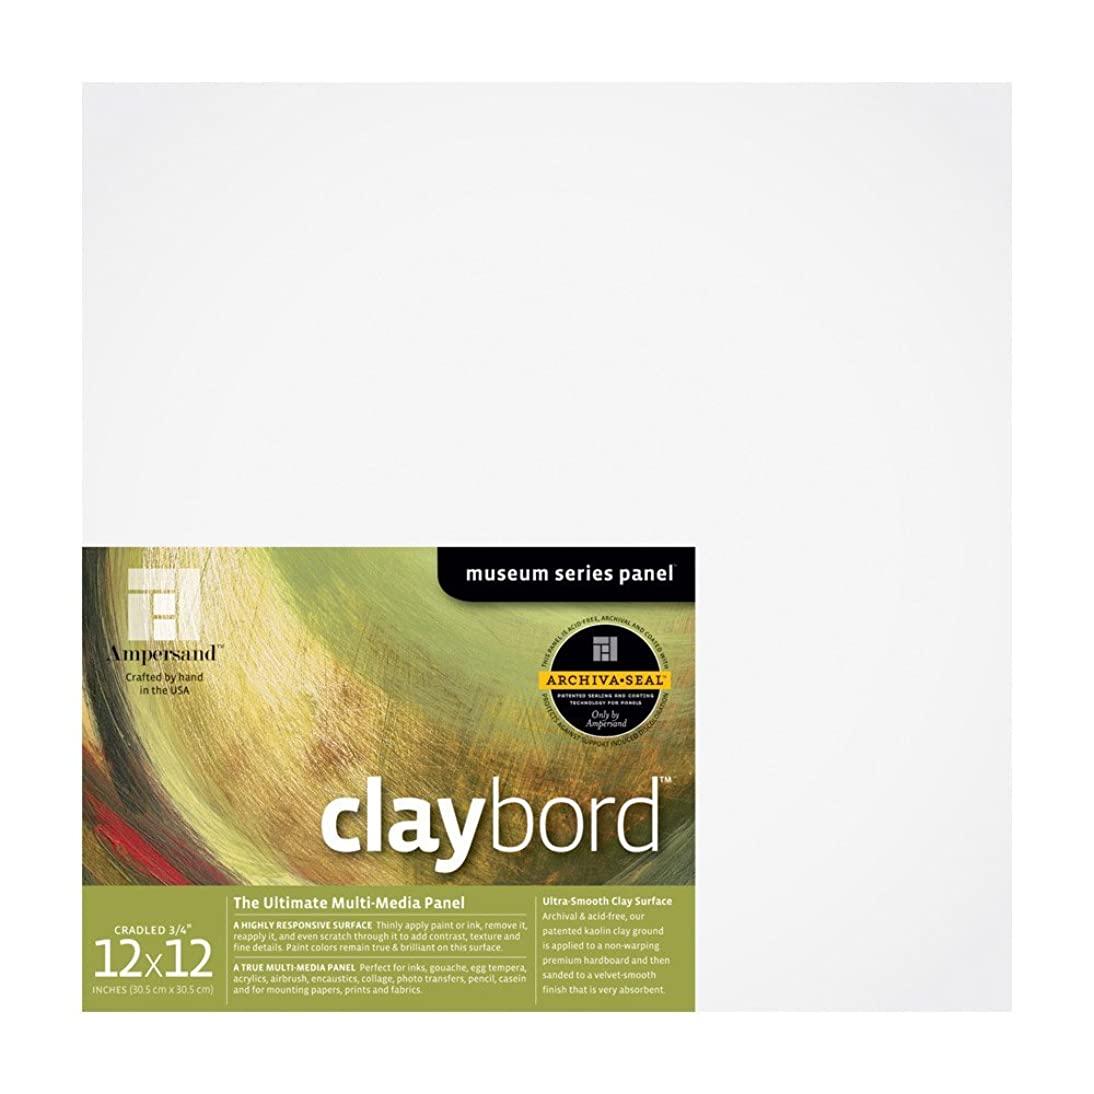 Ampersand Museum Series Claybord Panels for Paint and Ink, 3/4 inch Depth Cradled, 12X12 inch (CBSC122)